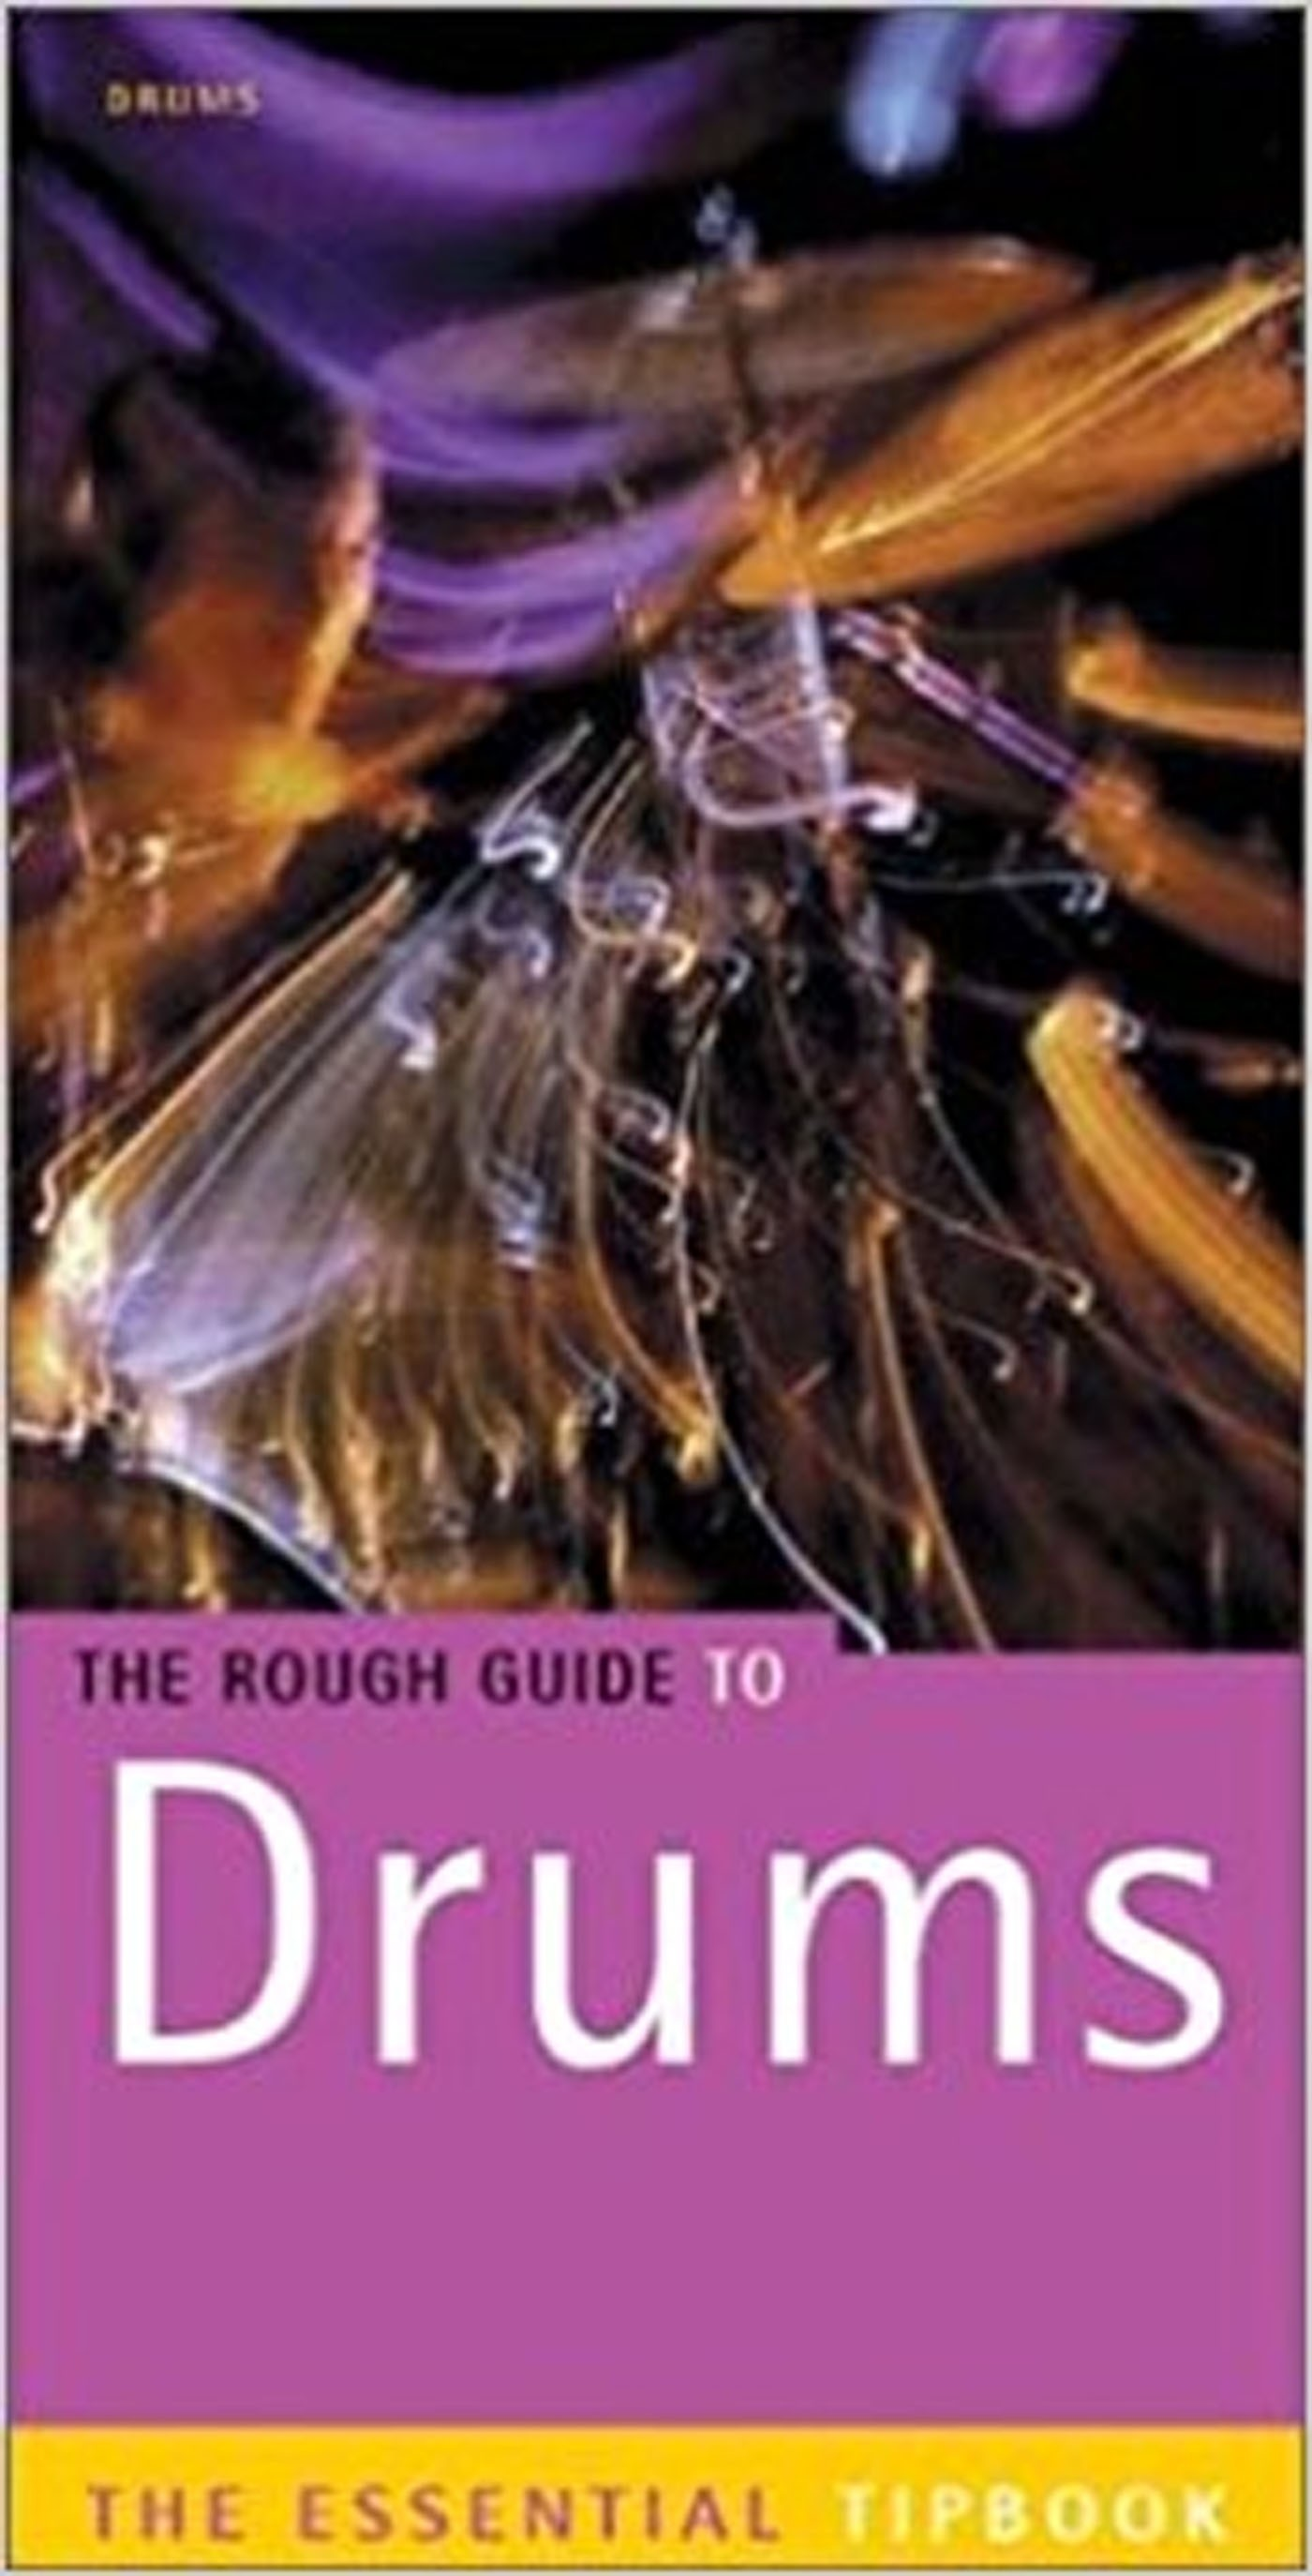 The Rough Guide To Drums Essential Tip Book First Edition Hugo Pinksterboer S15